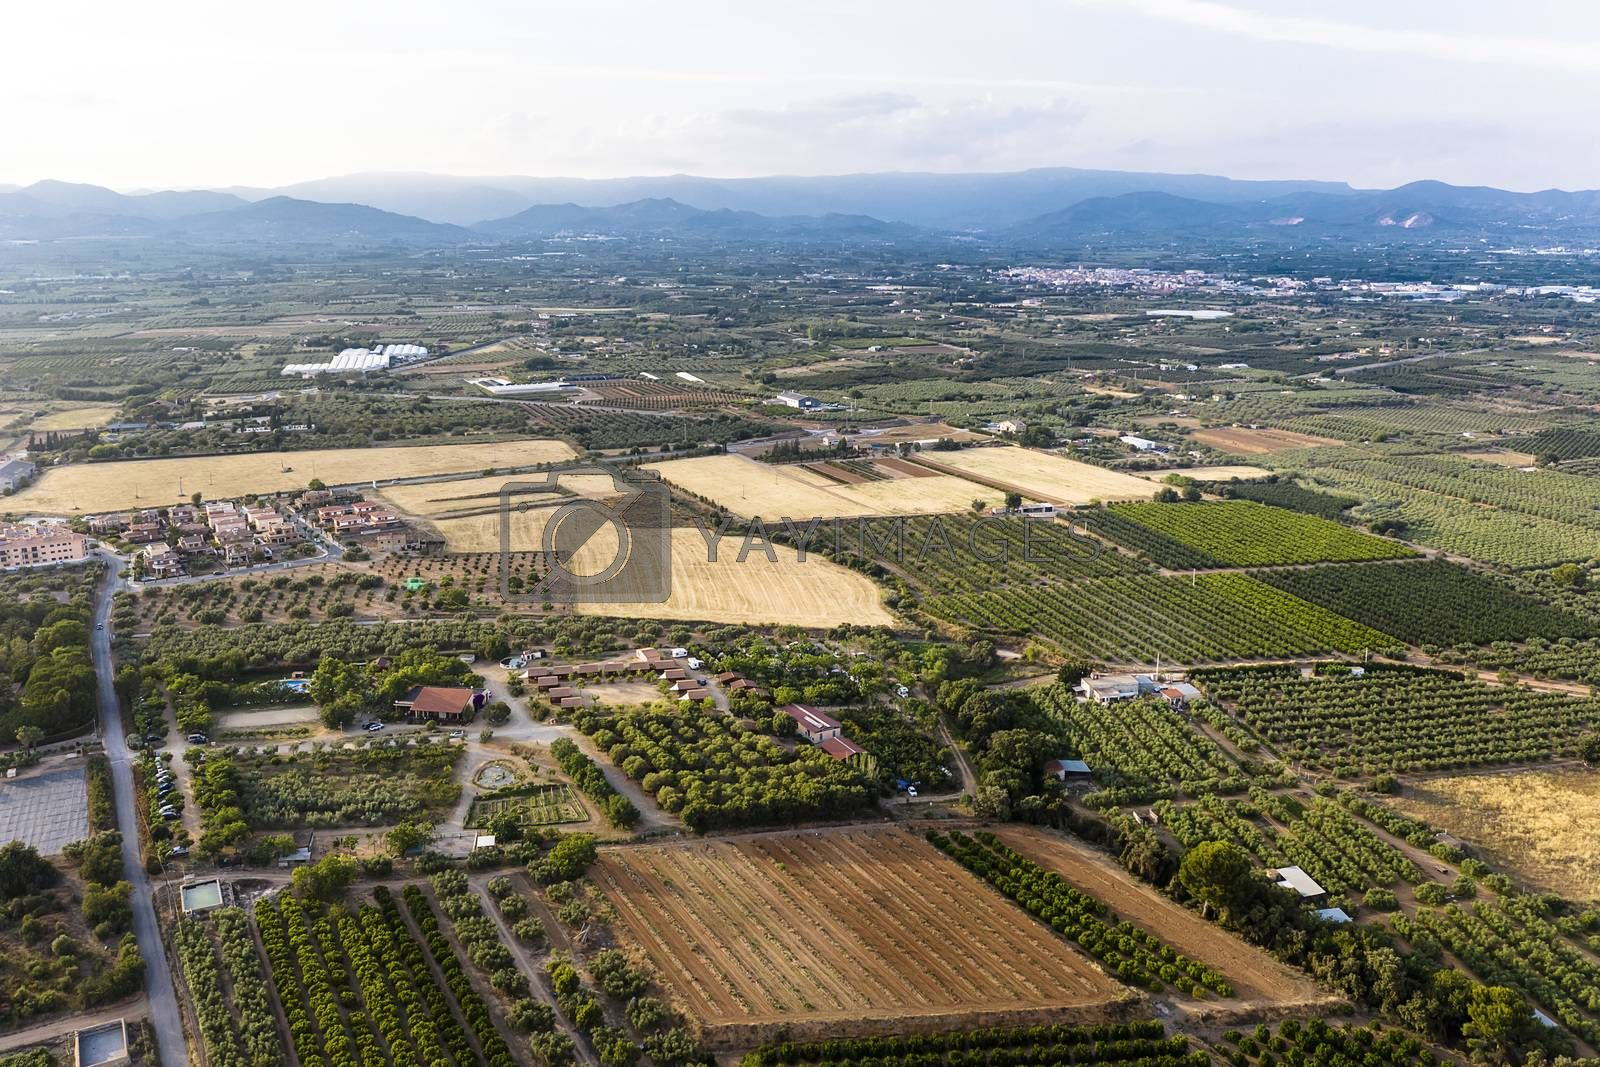 top view of crop fields near of the mountains in Tarragona, green field agriculture industry aerial view